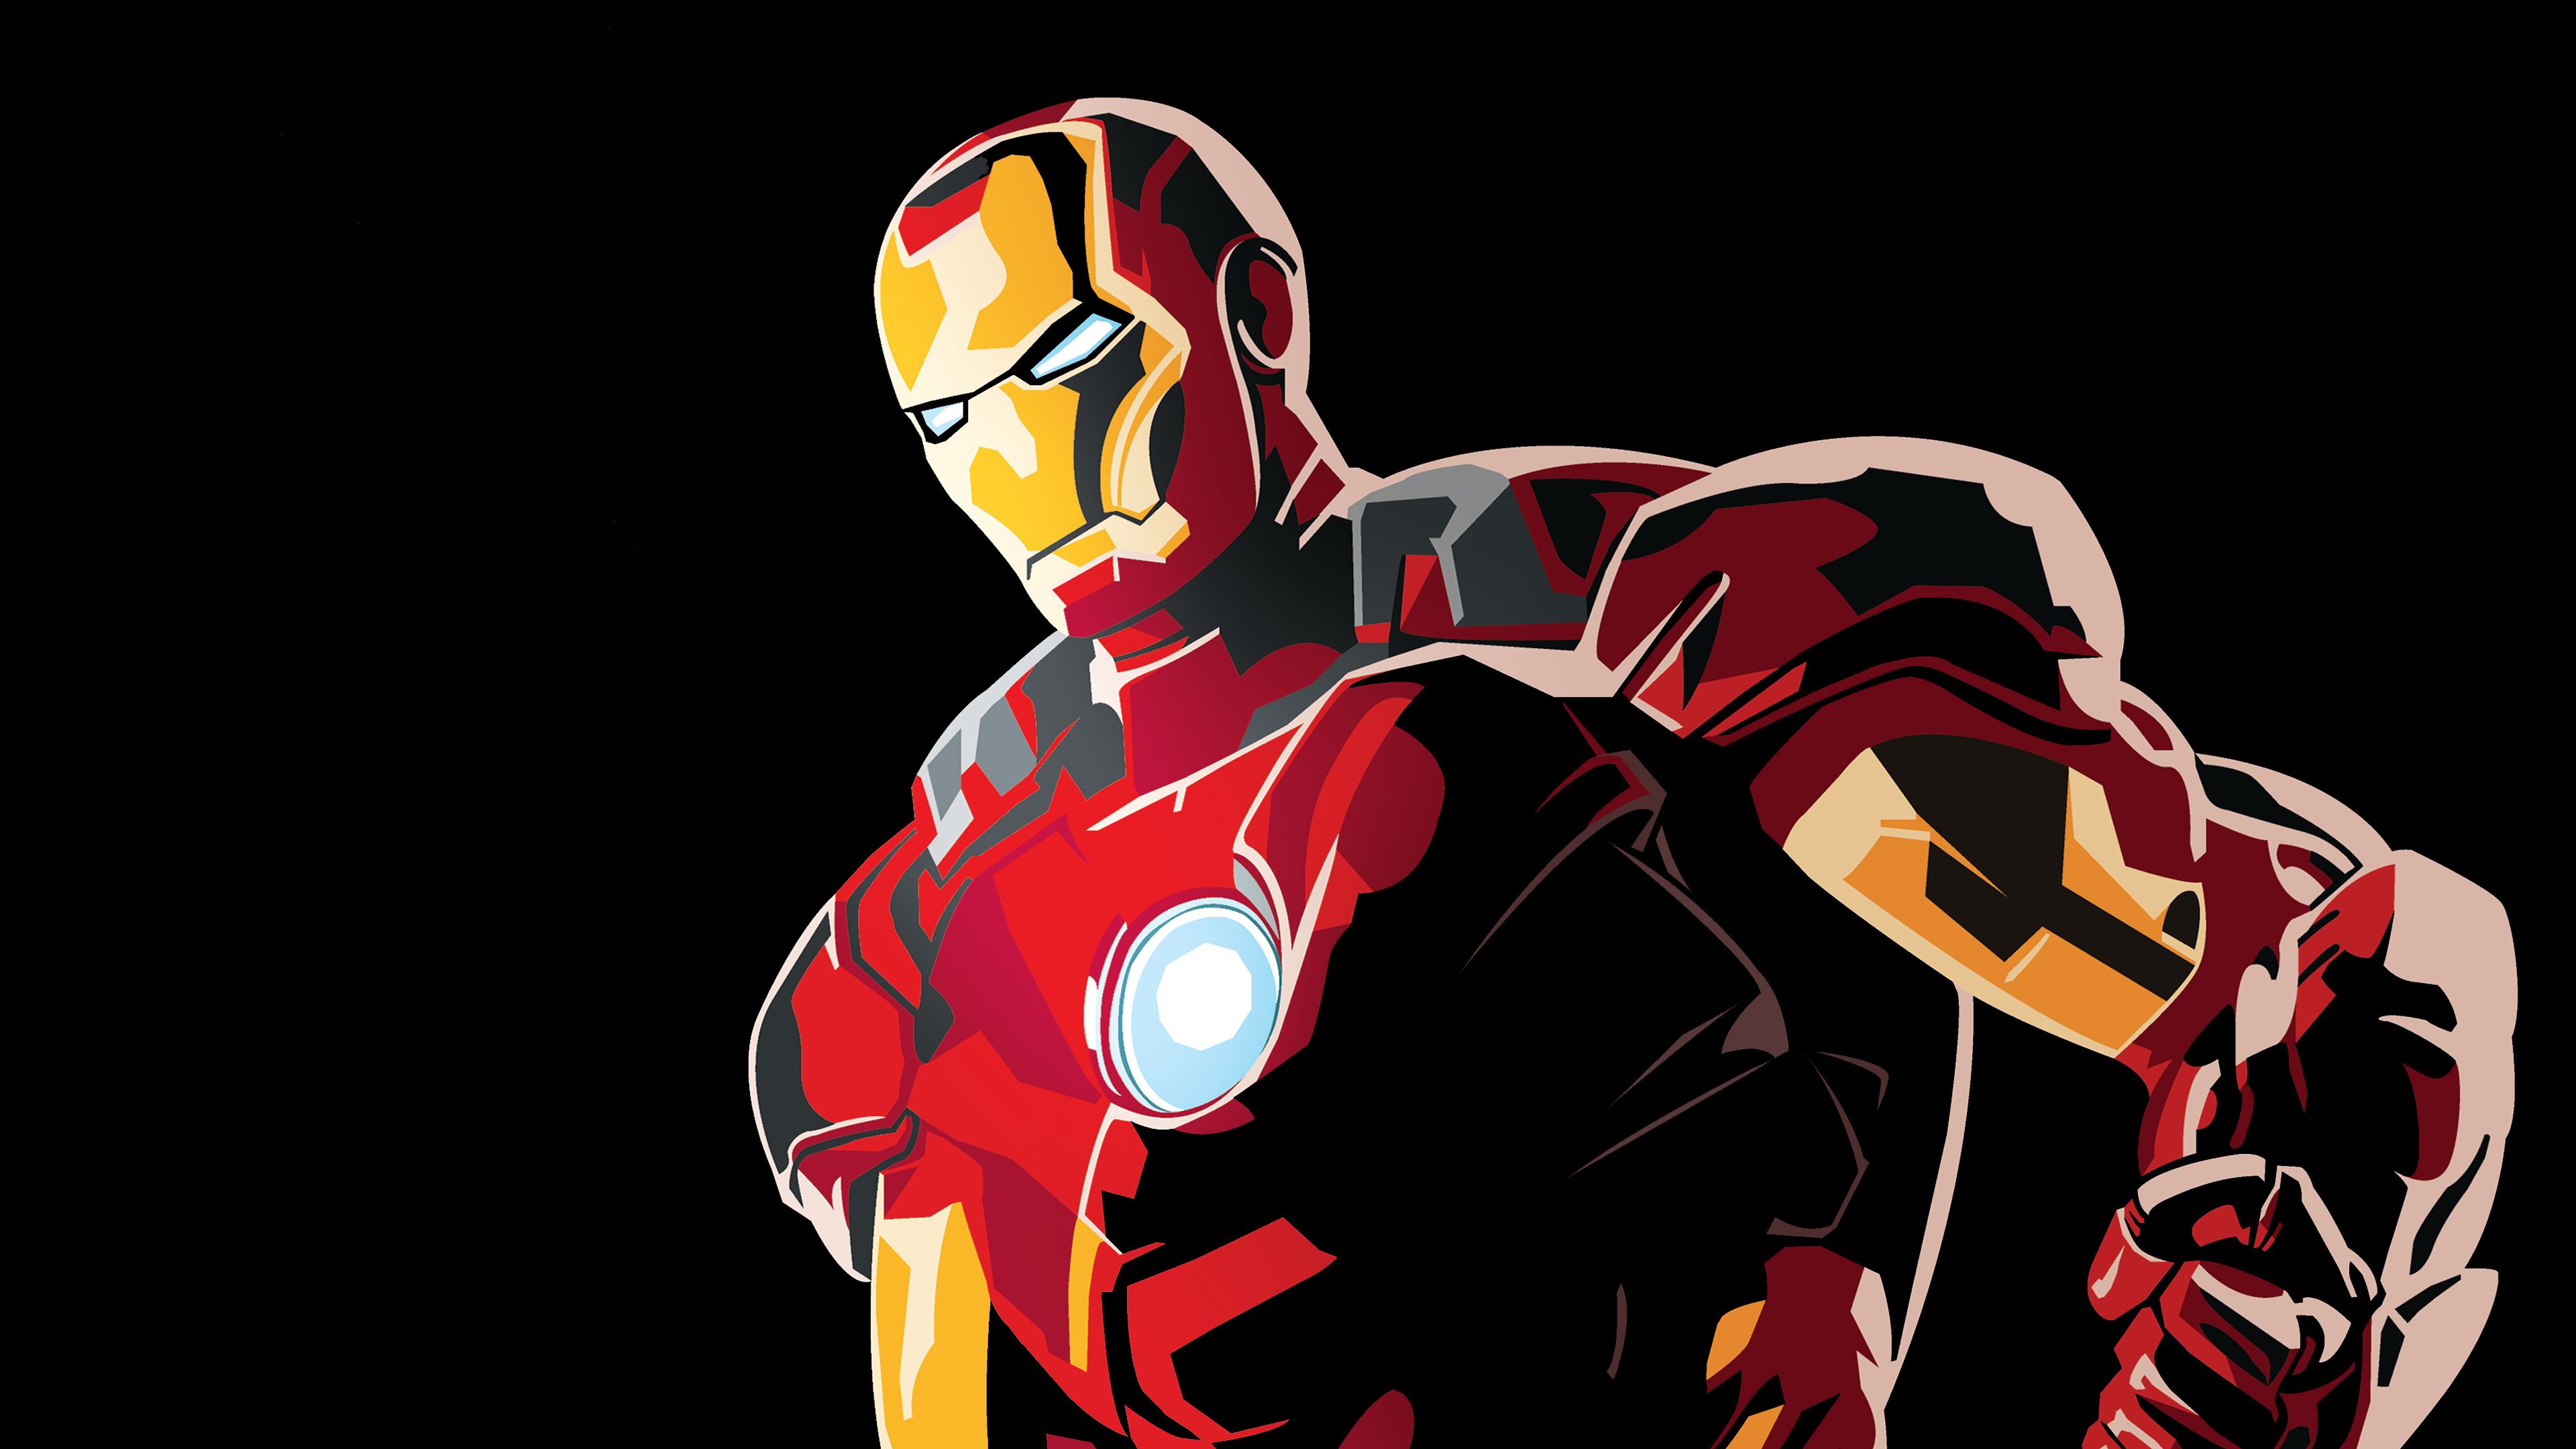 Wallpaper 4k Iron Man Graphic Design 4k Art 4k Wallpapers Artwork